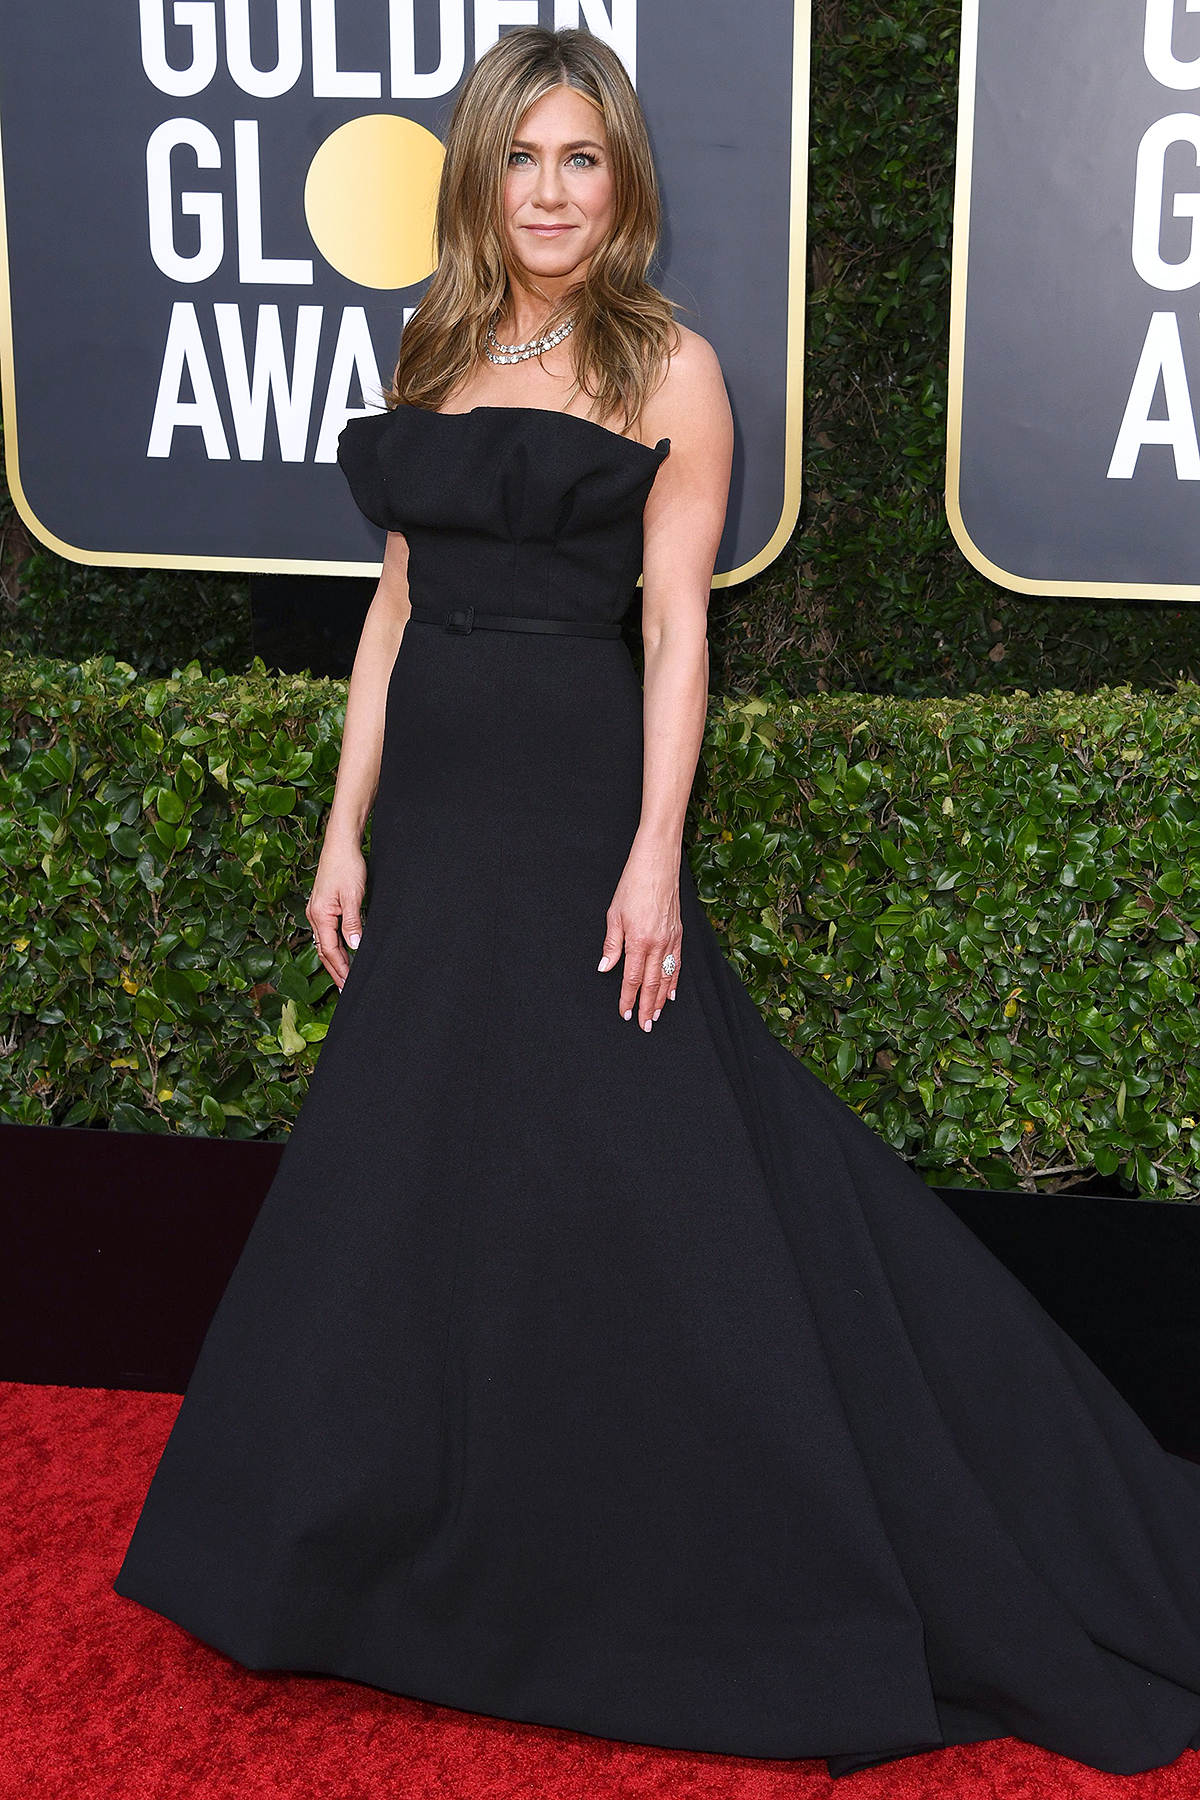 Jennifer Aniston In Off-Shoulder Or Long Sleeves: Which Look Do You Like The Most? 1